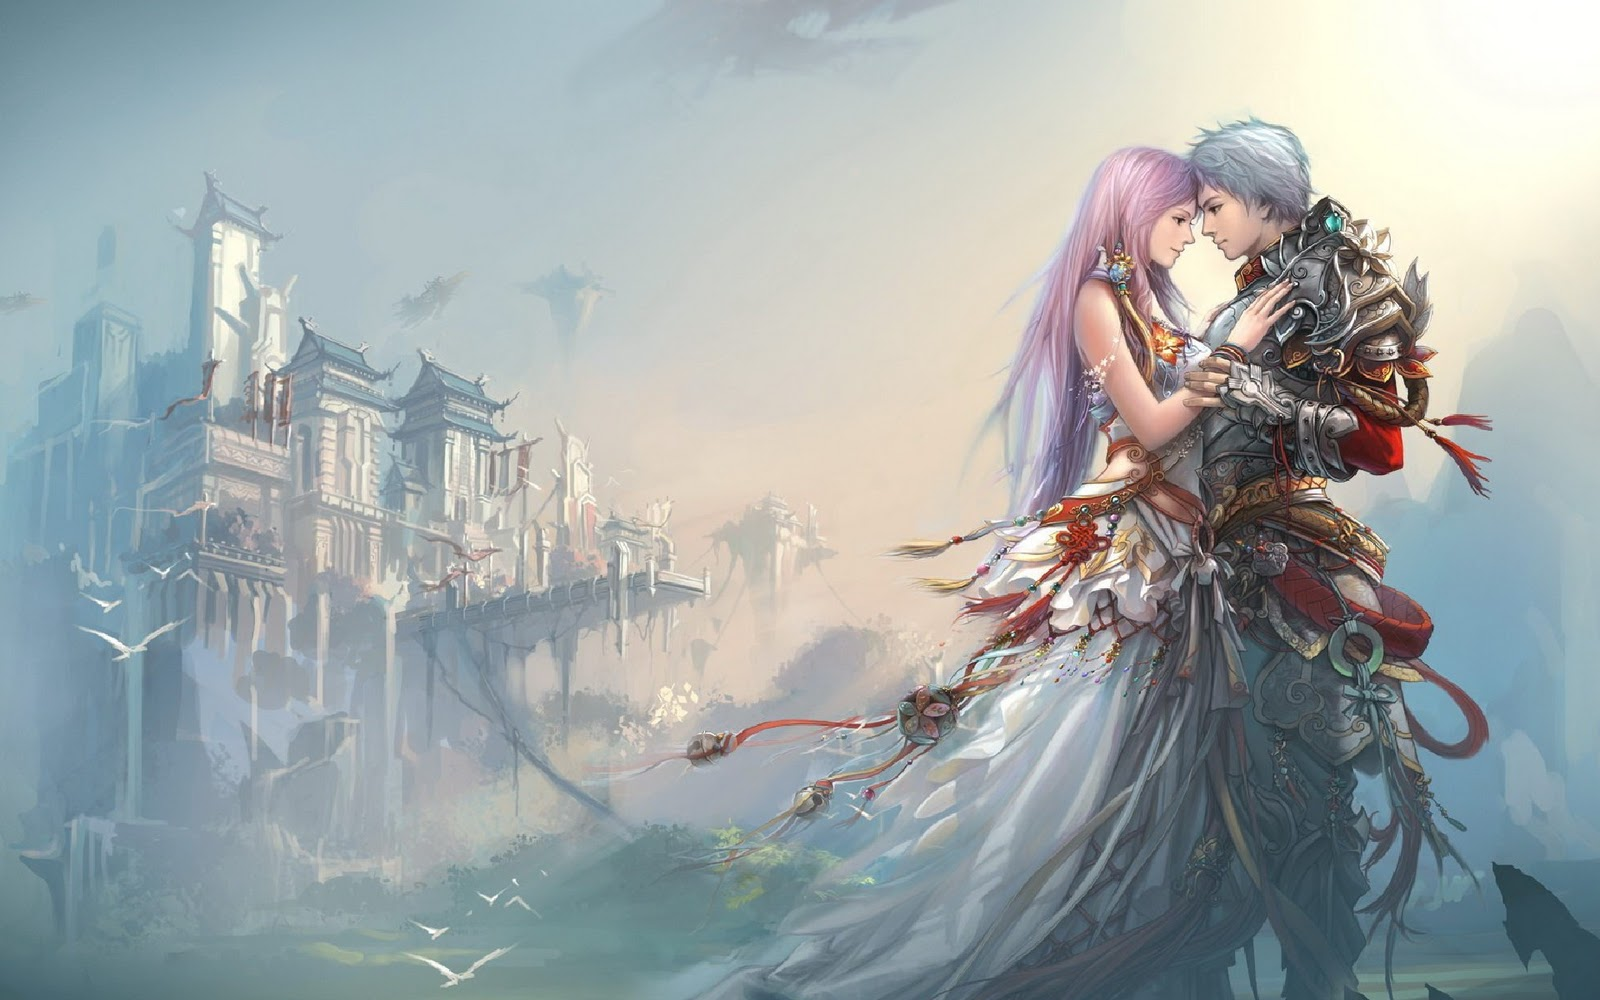 Love Animation Wallpaper Hd : Romance Love Anime 11 Desktop Background - Hdlovewall.com